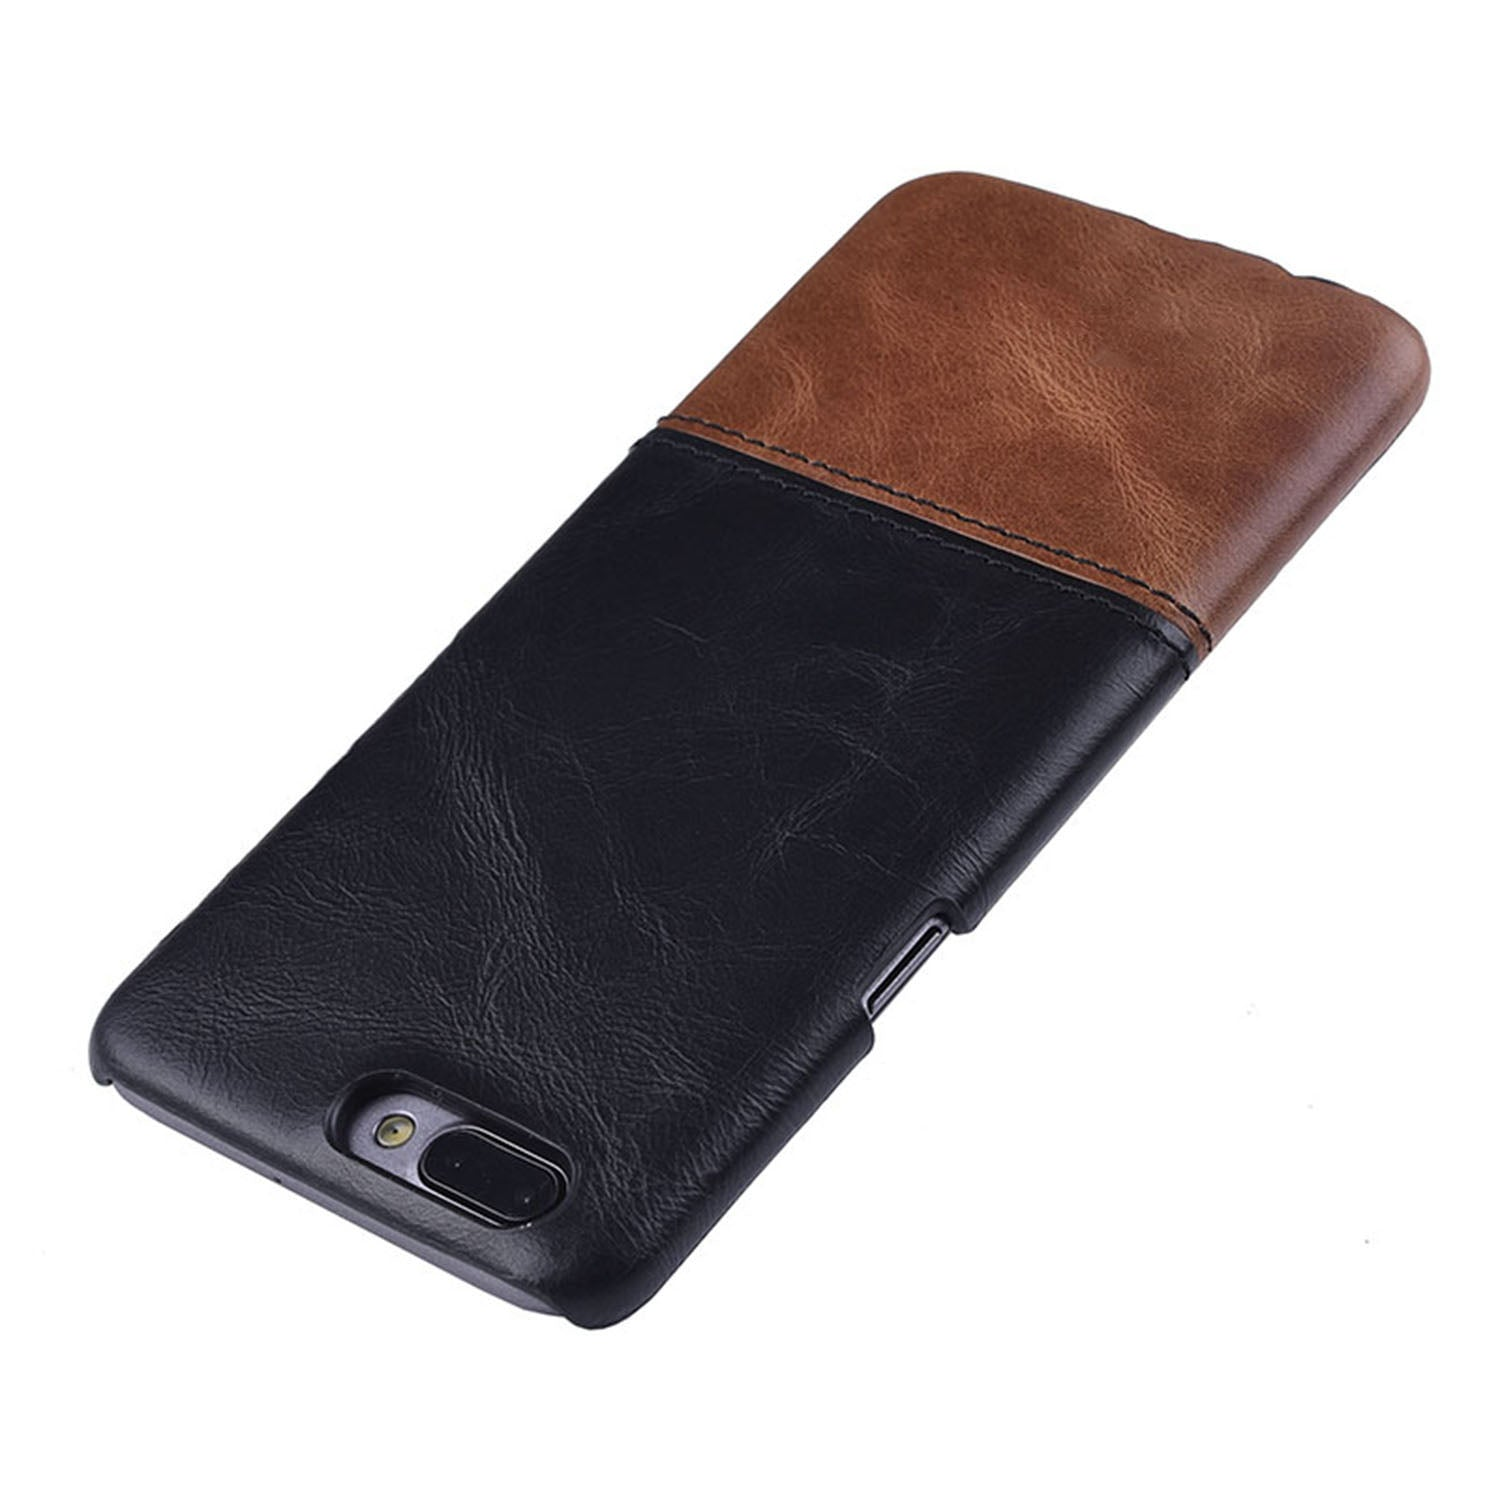 Genuine Leather Dual Color Hand Stitched Premium Protective Case Cover for Oneplus 5 - Black , Brown - Mobizang